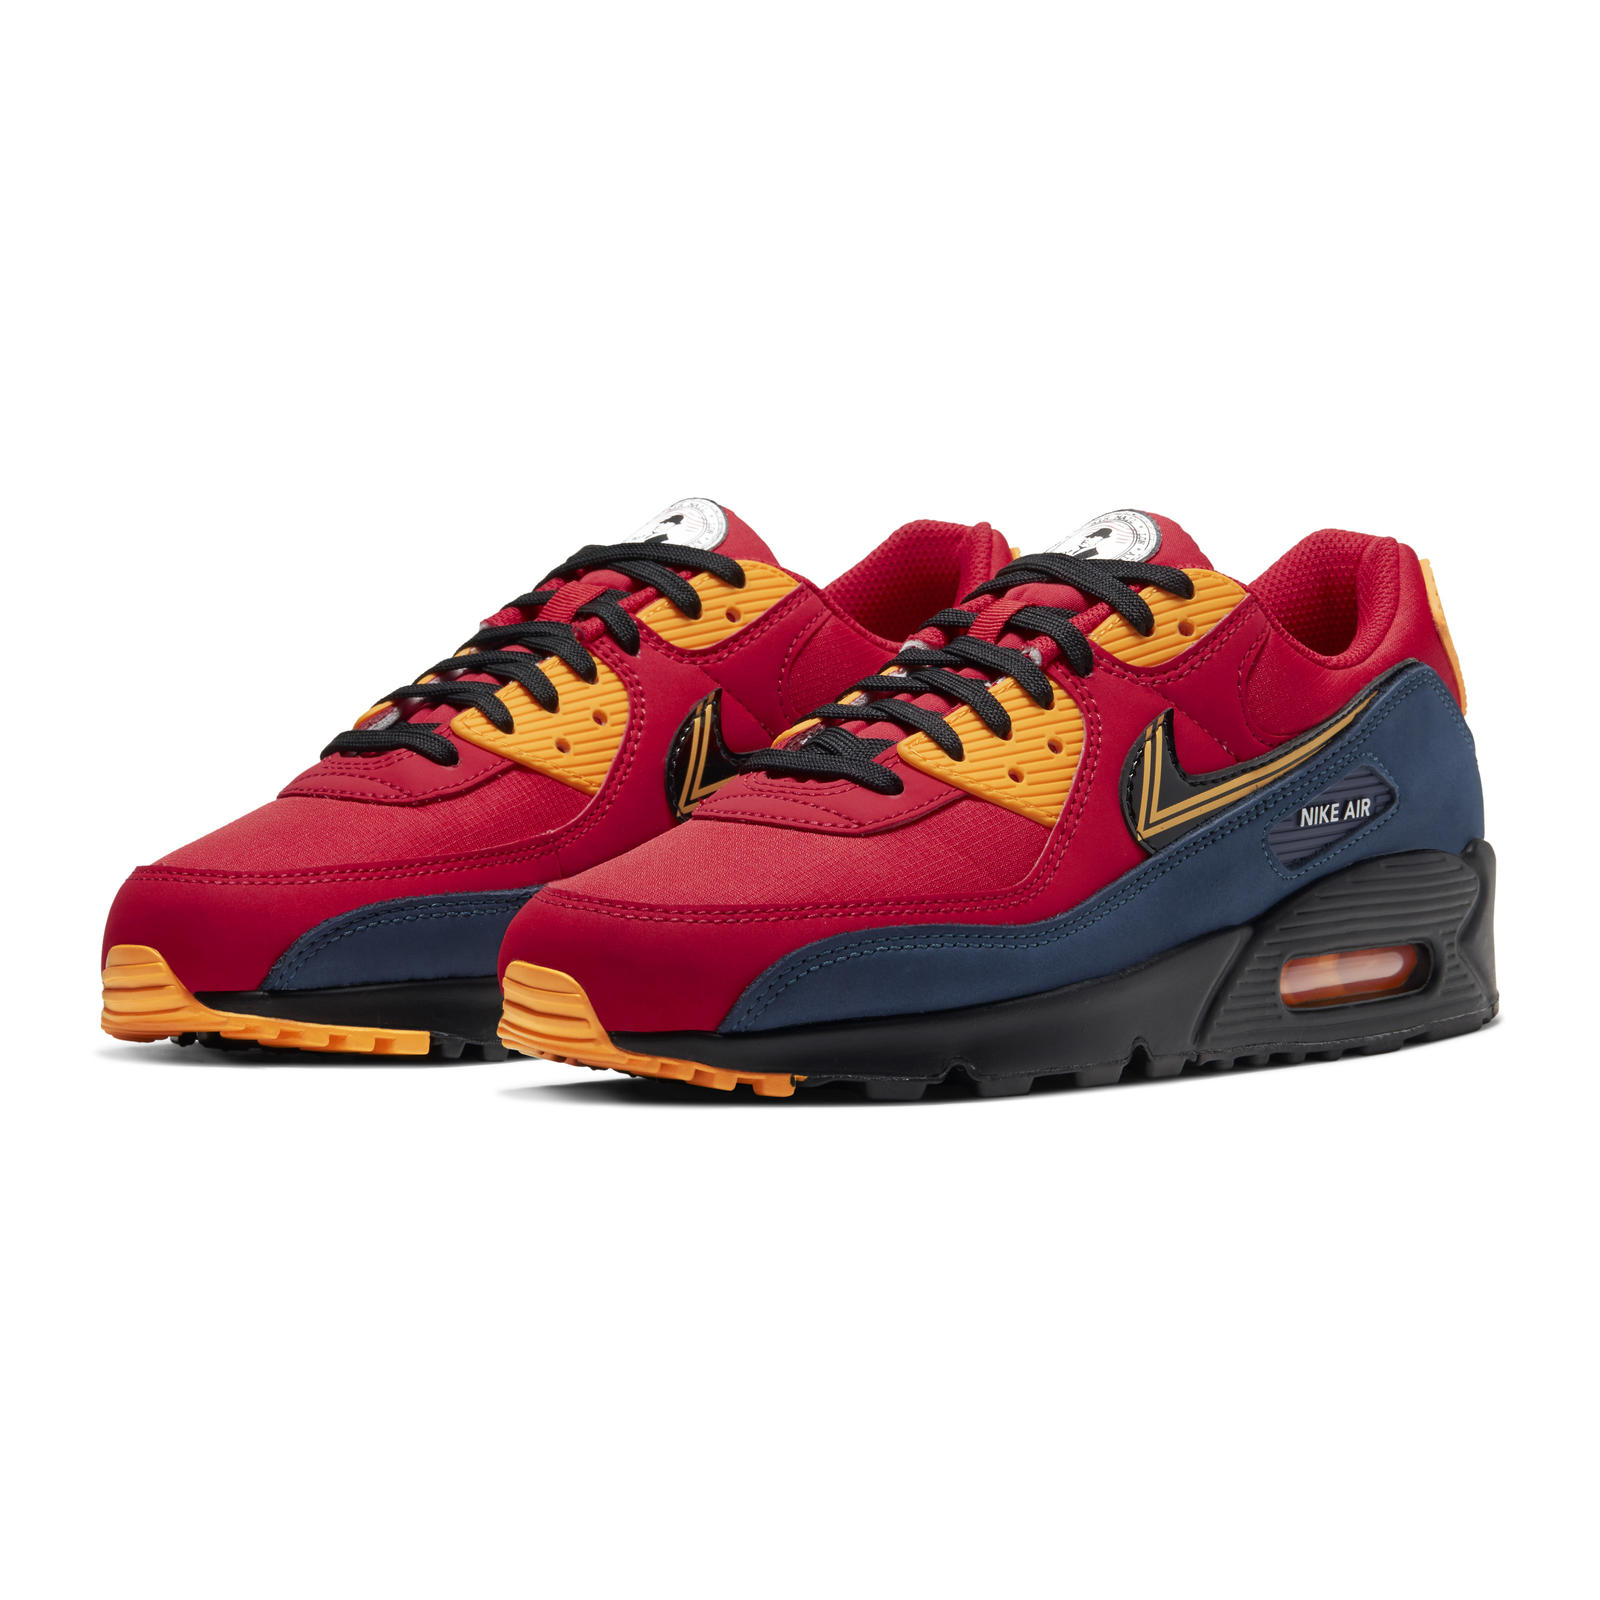 Nike Air Max 90 City Pack London